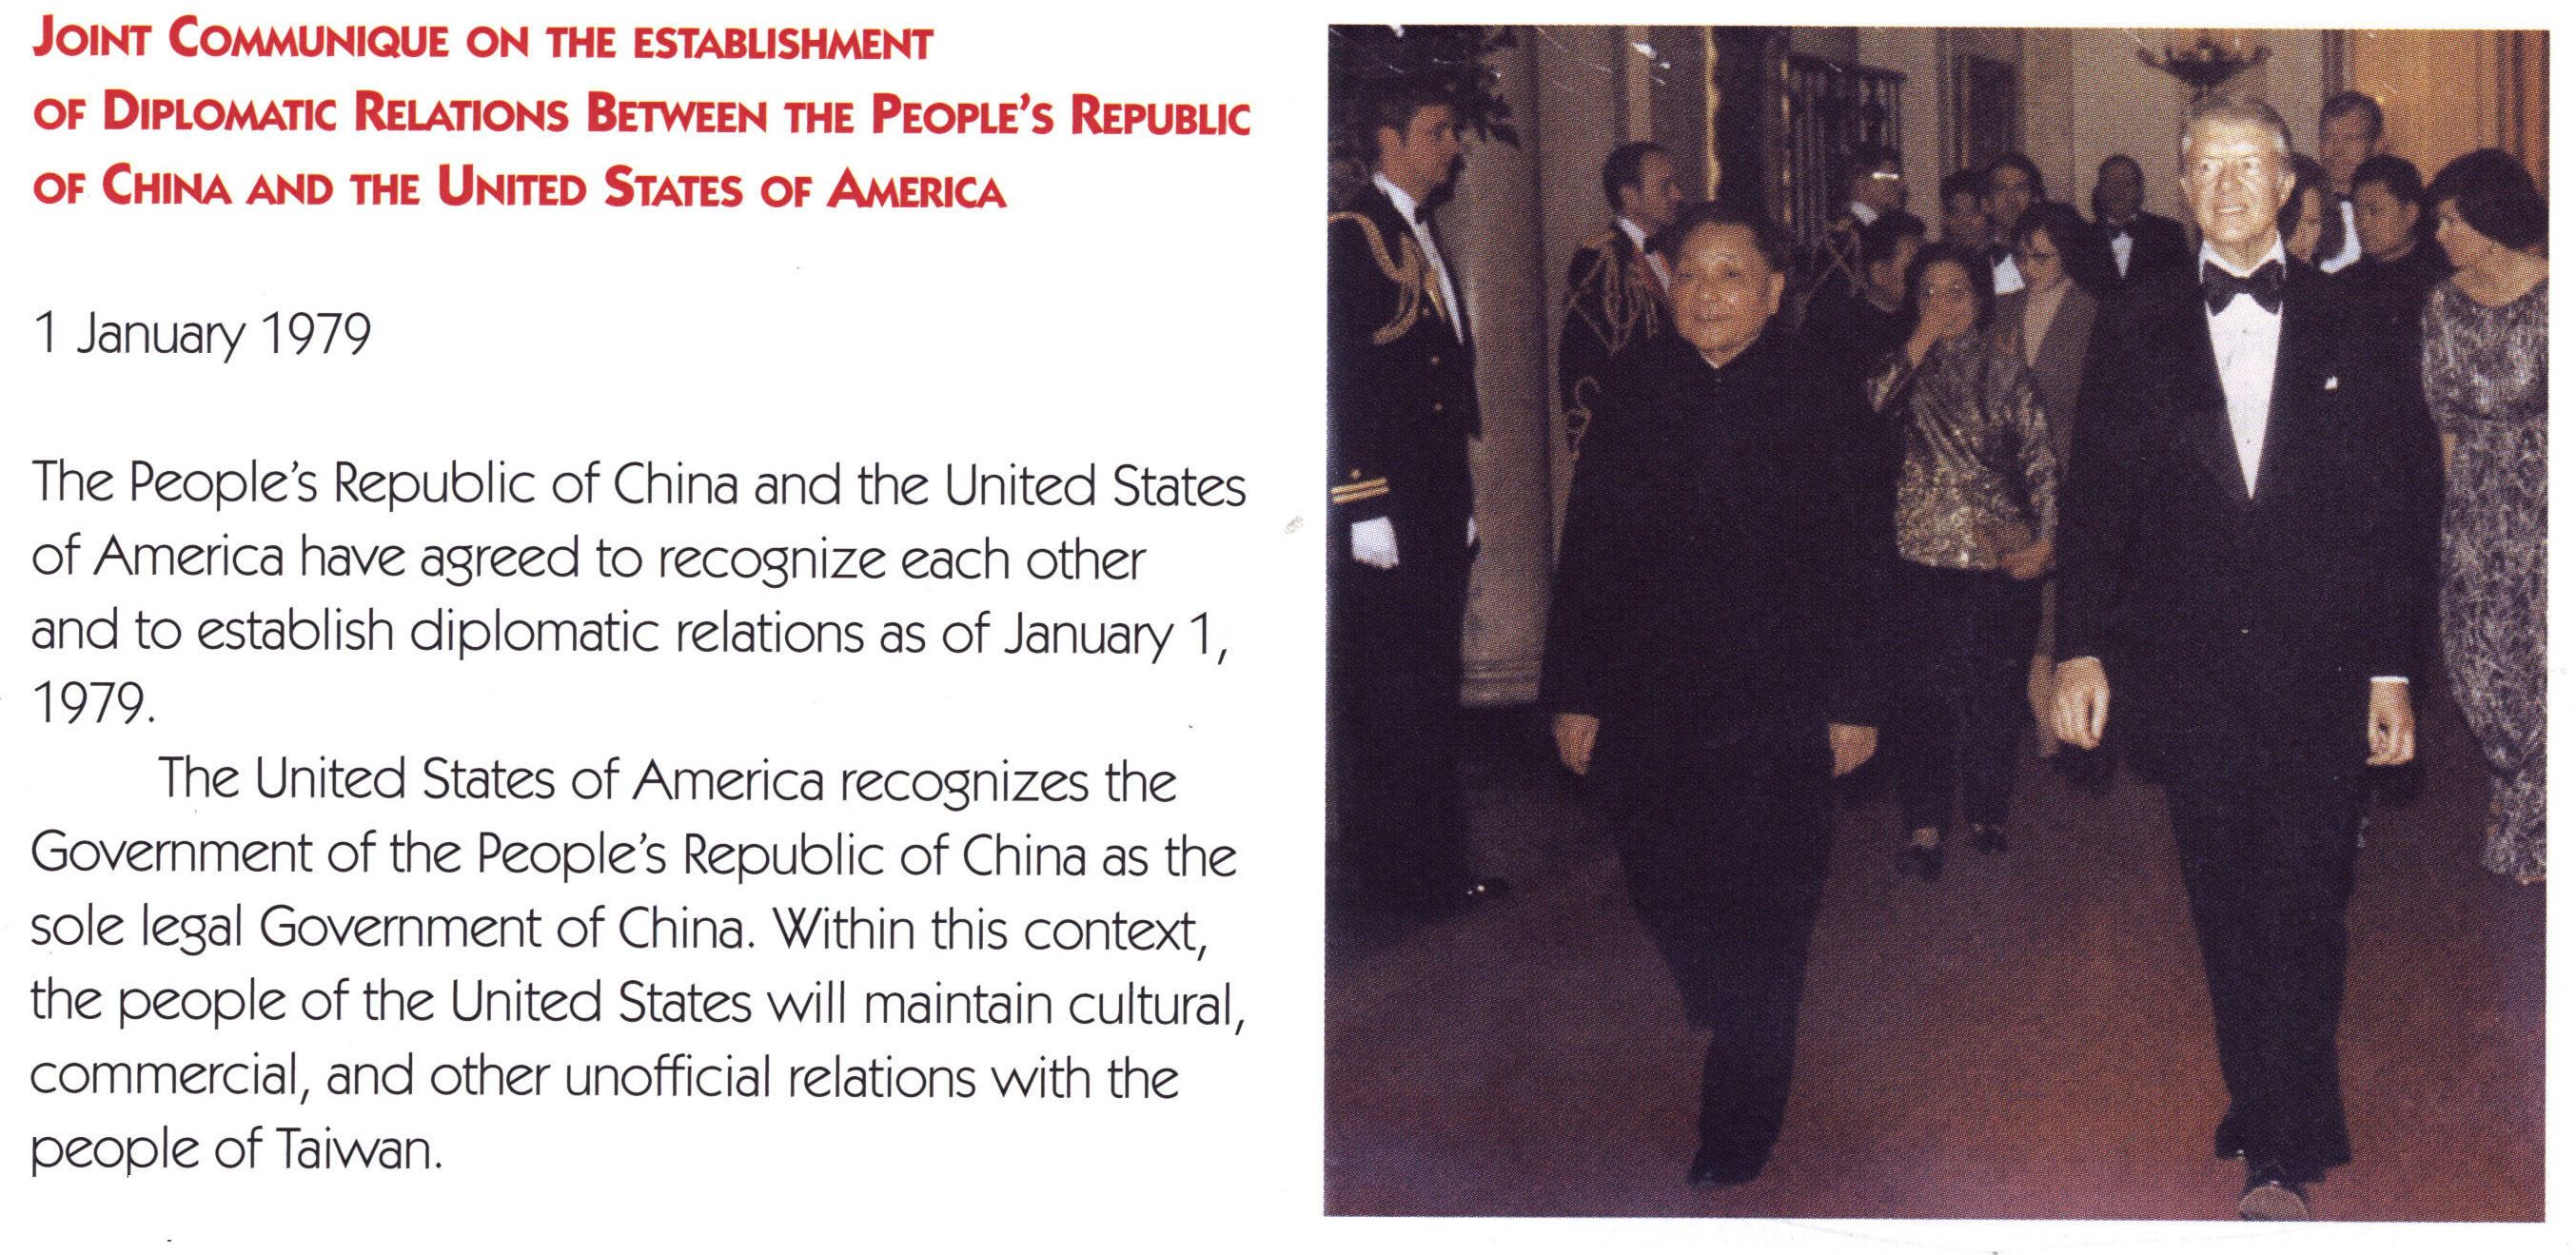 Establishment of diplomatic relations between China and the United States